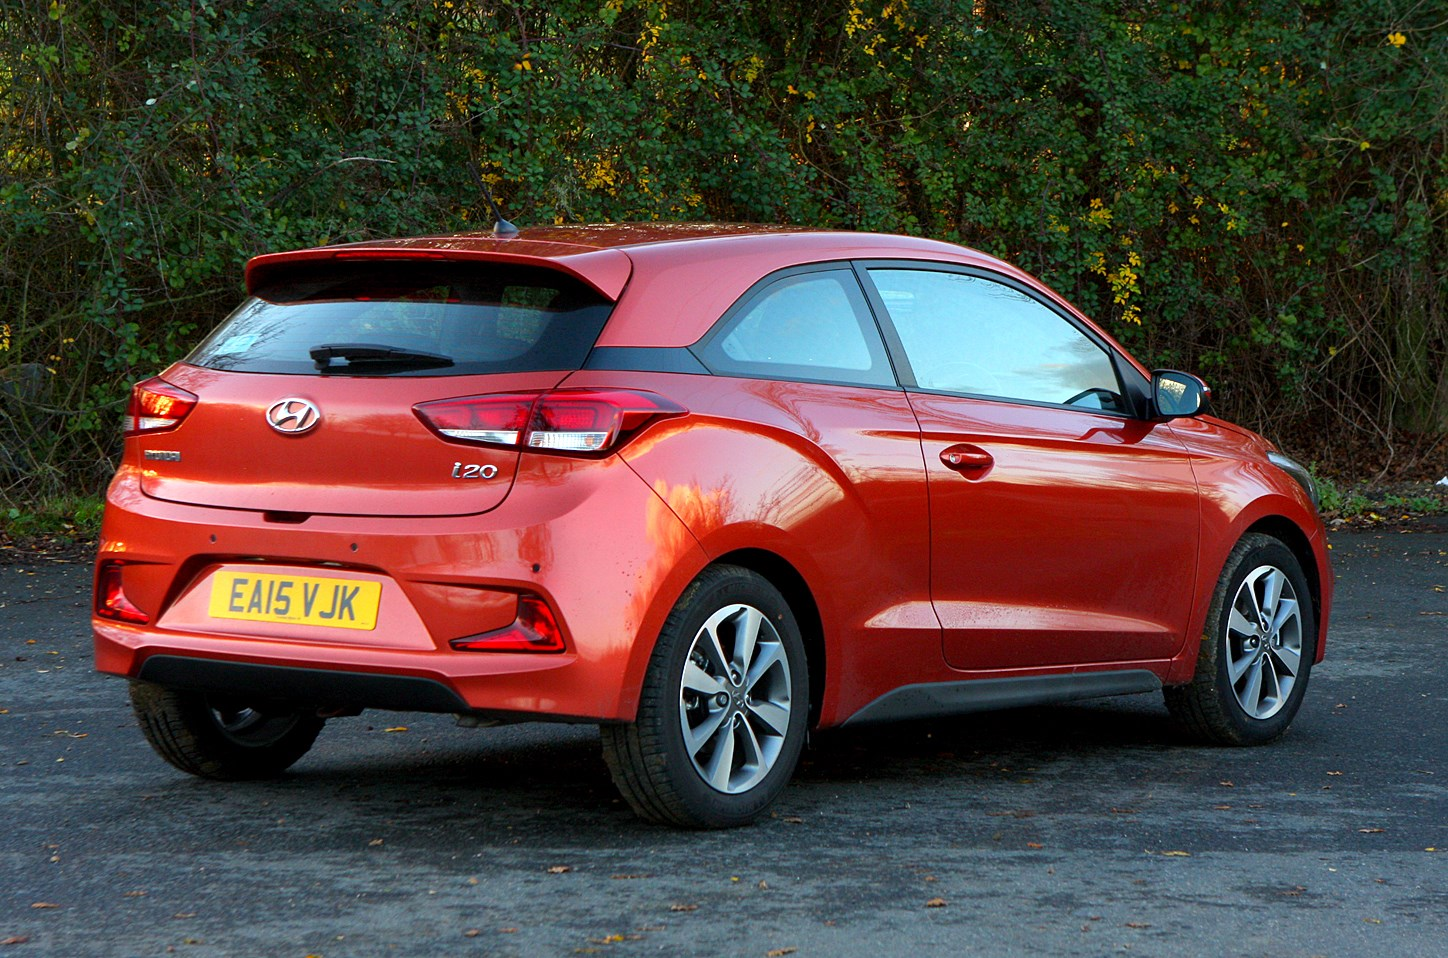 Hyundai i20 Coupe (2015 - 2017) Photos | Parkers